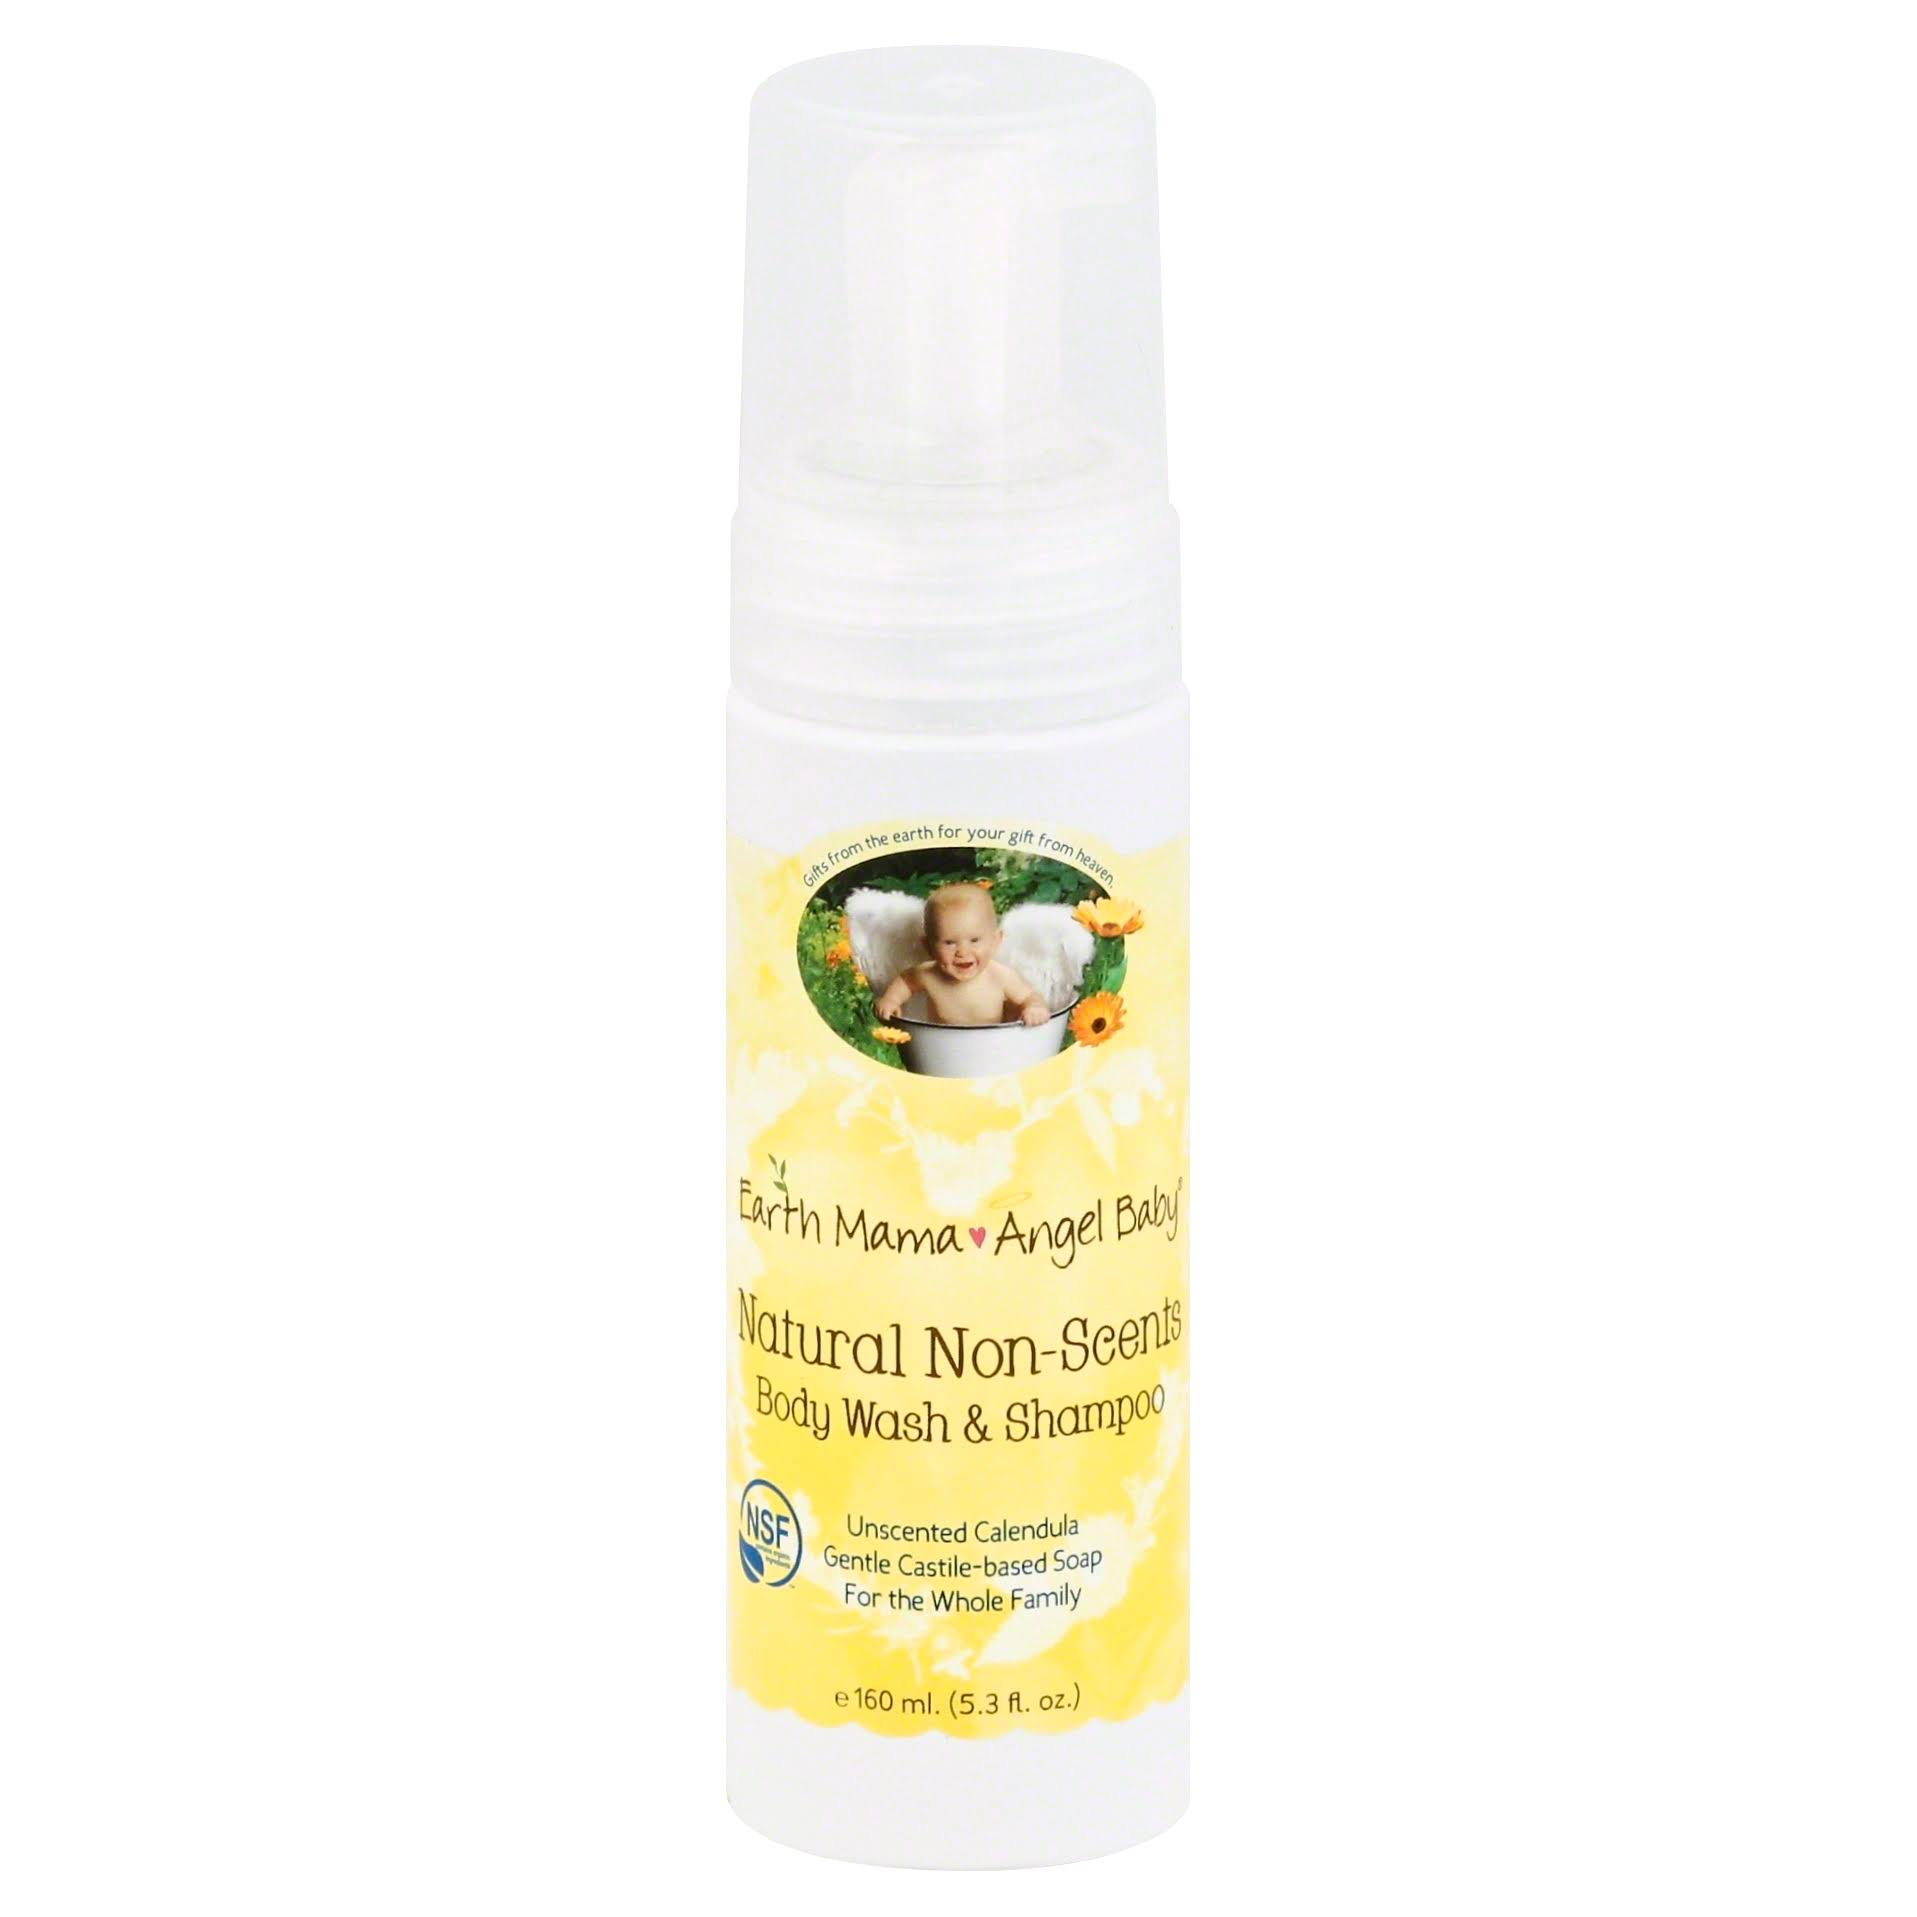 Earth Mama Angel Baby Natural Non-Scents Body Wash & Shampoo - 160ml